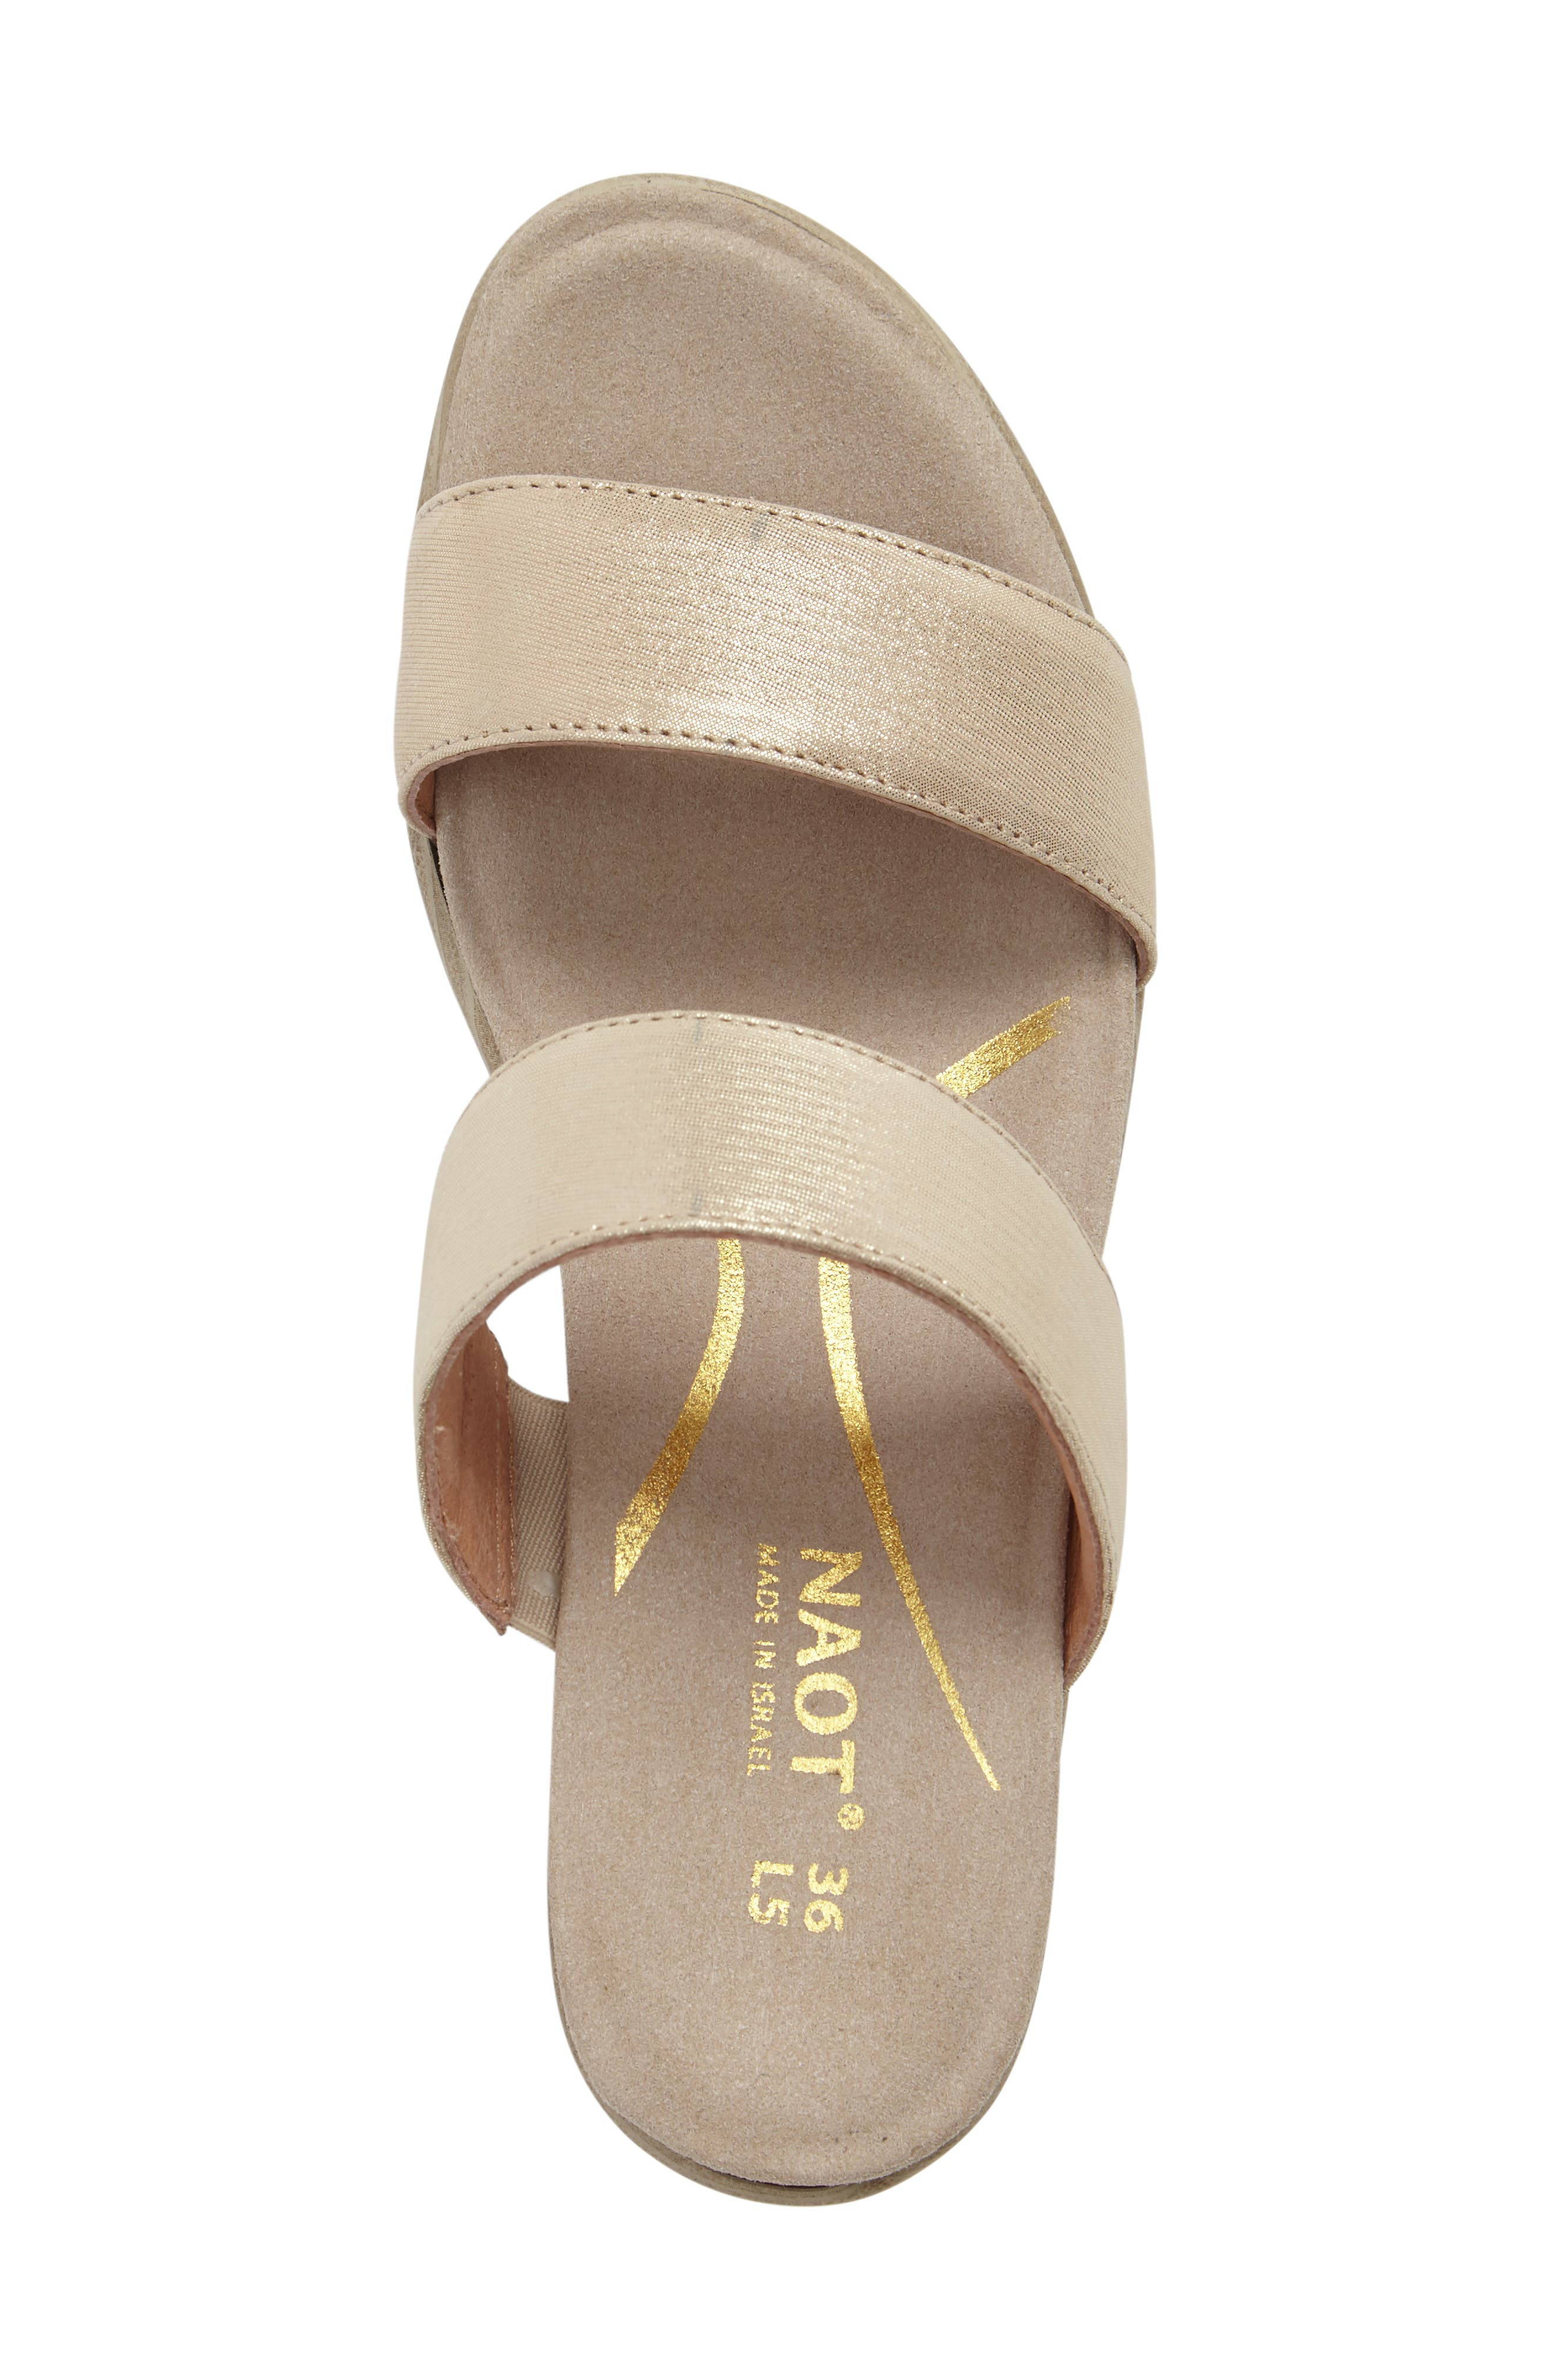 Fate Platform Sandal,                             Alternate thumbnail 5, color,                             GOLD THREADS LEATHER